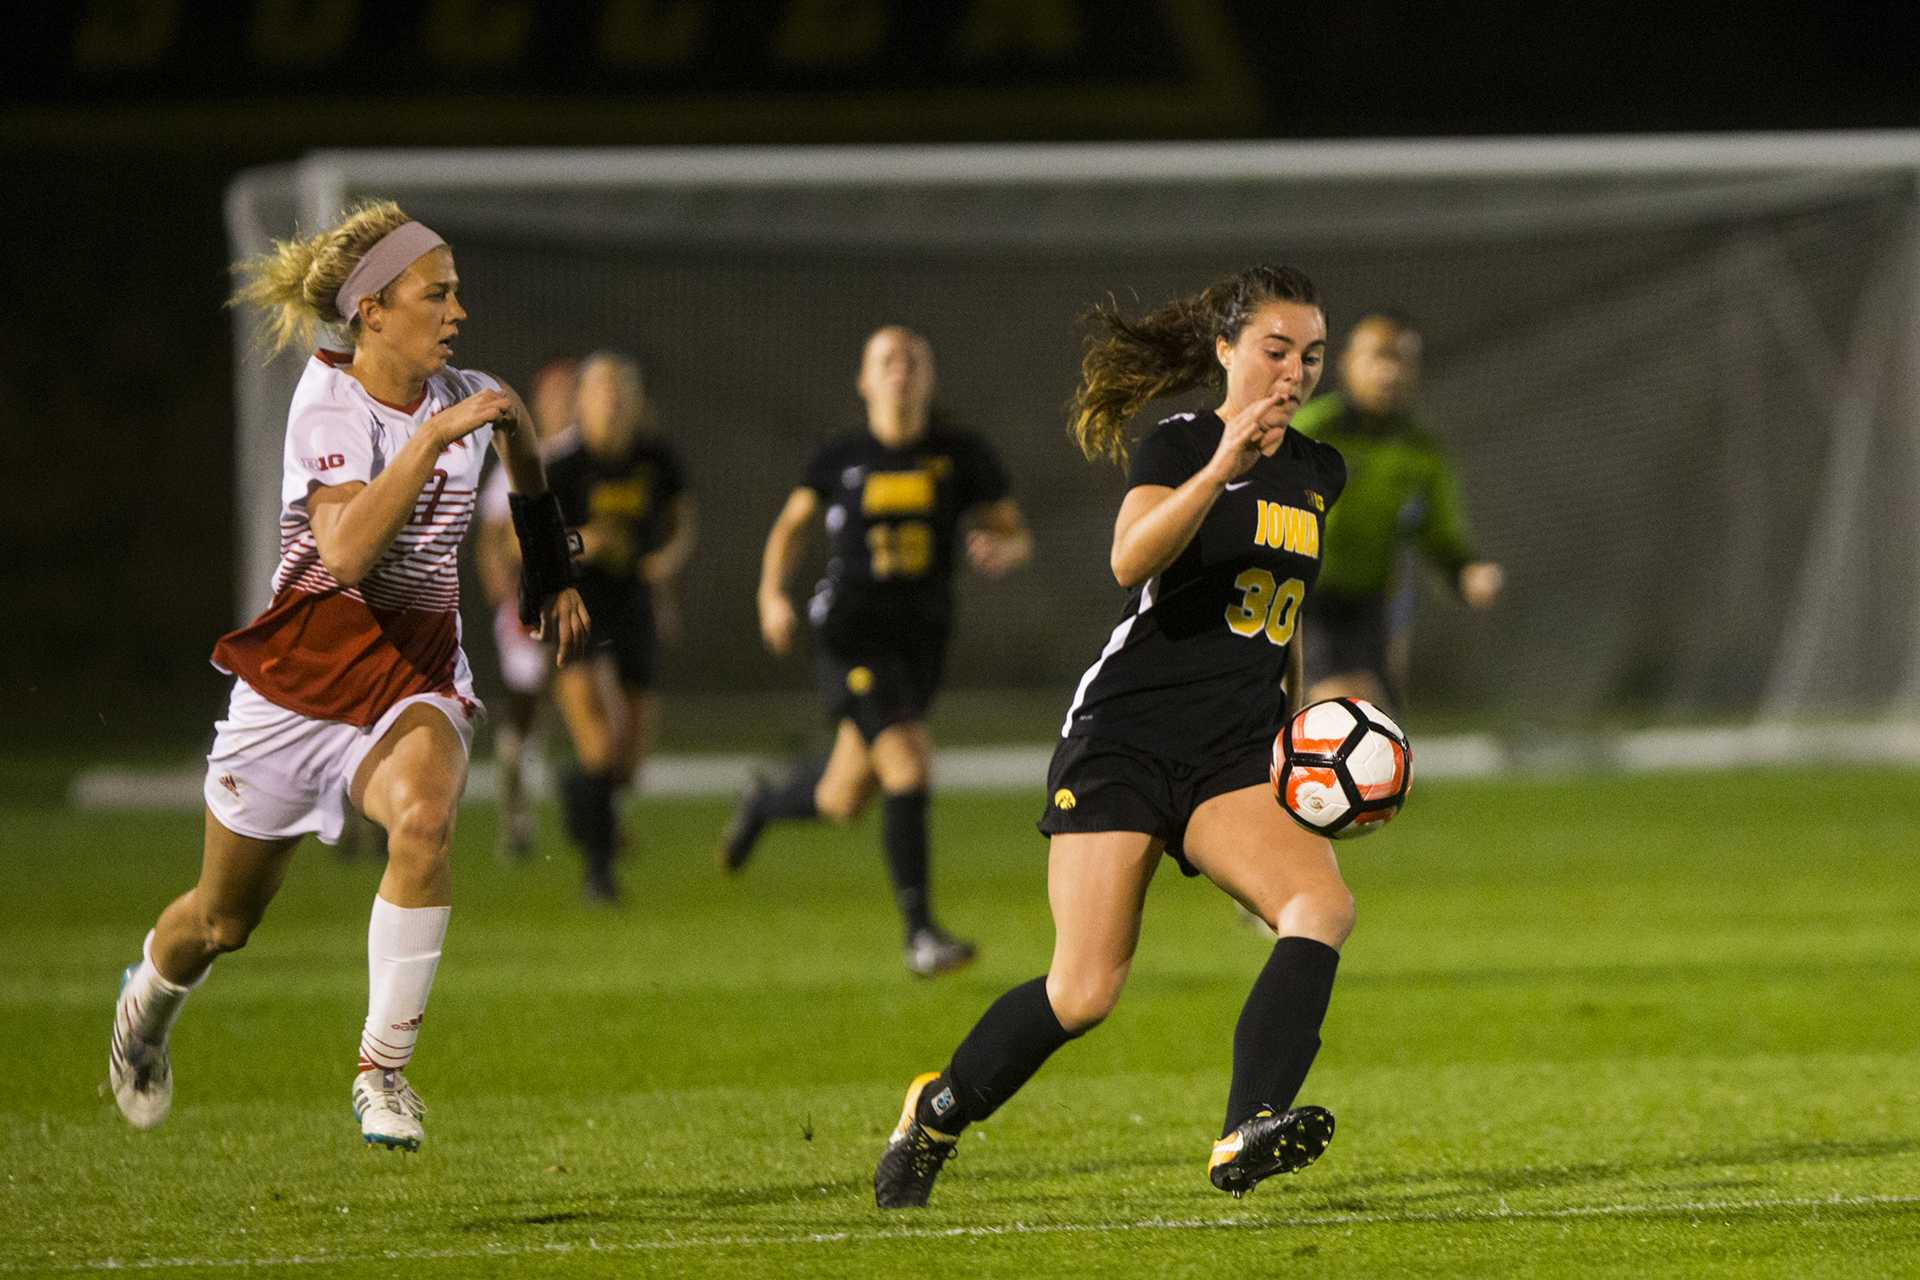 Iowa forward Devin Burns runs a ball down during the Iowa/Nebraska women's soccer game at the UI Soccer Complex on Wednesday, Oct. 18, 2017. The Hawkeyes ended their game against the Cornhuskers in a 0-0 tie after two overtime periods. (Joseph Cress/The Daily Iowan)